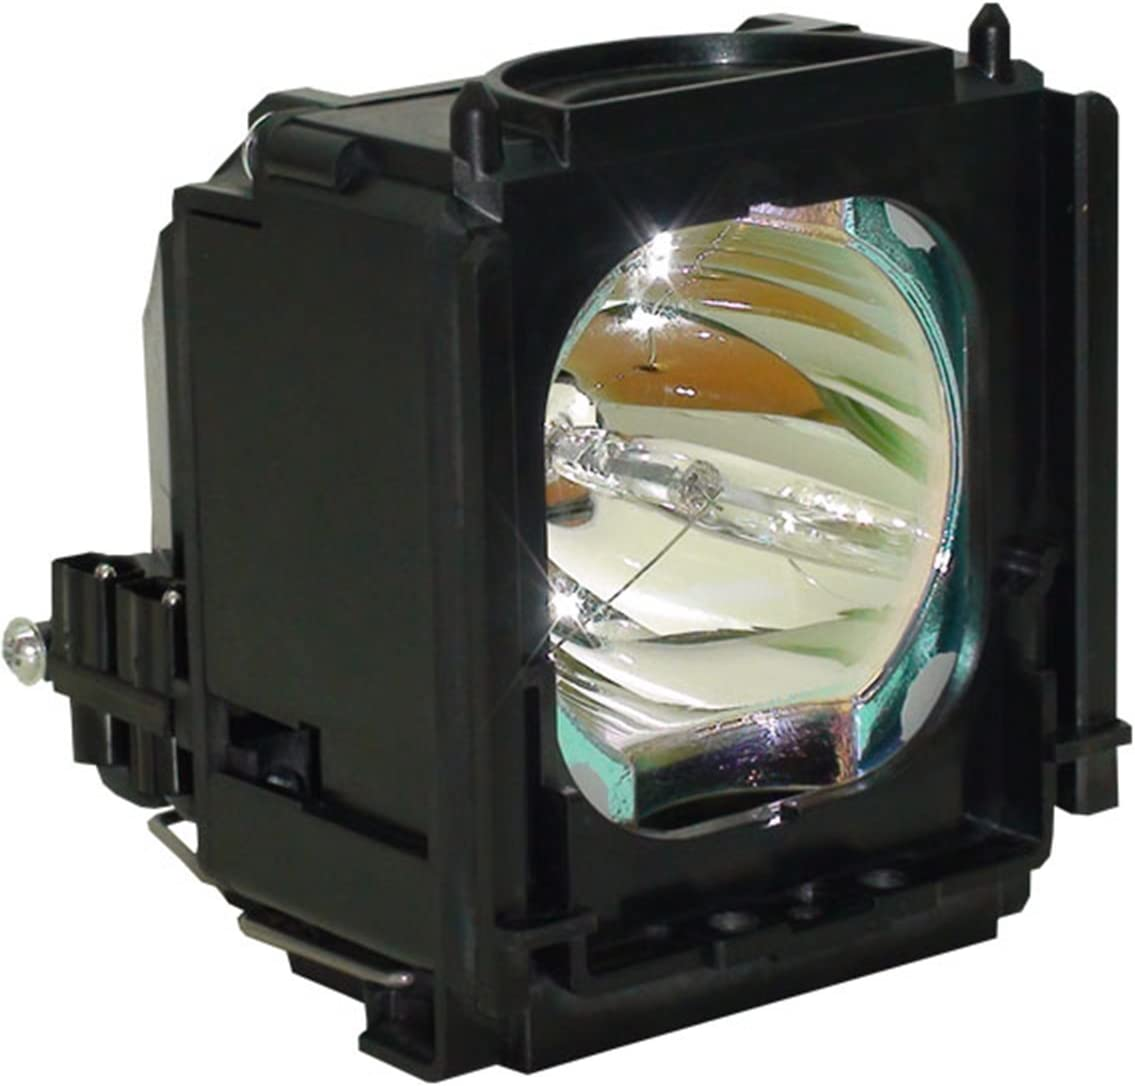 PHILIPS Samsung HL-S6187W HLS6187W Lamp with Housing BP96-01472A